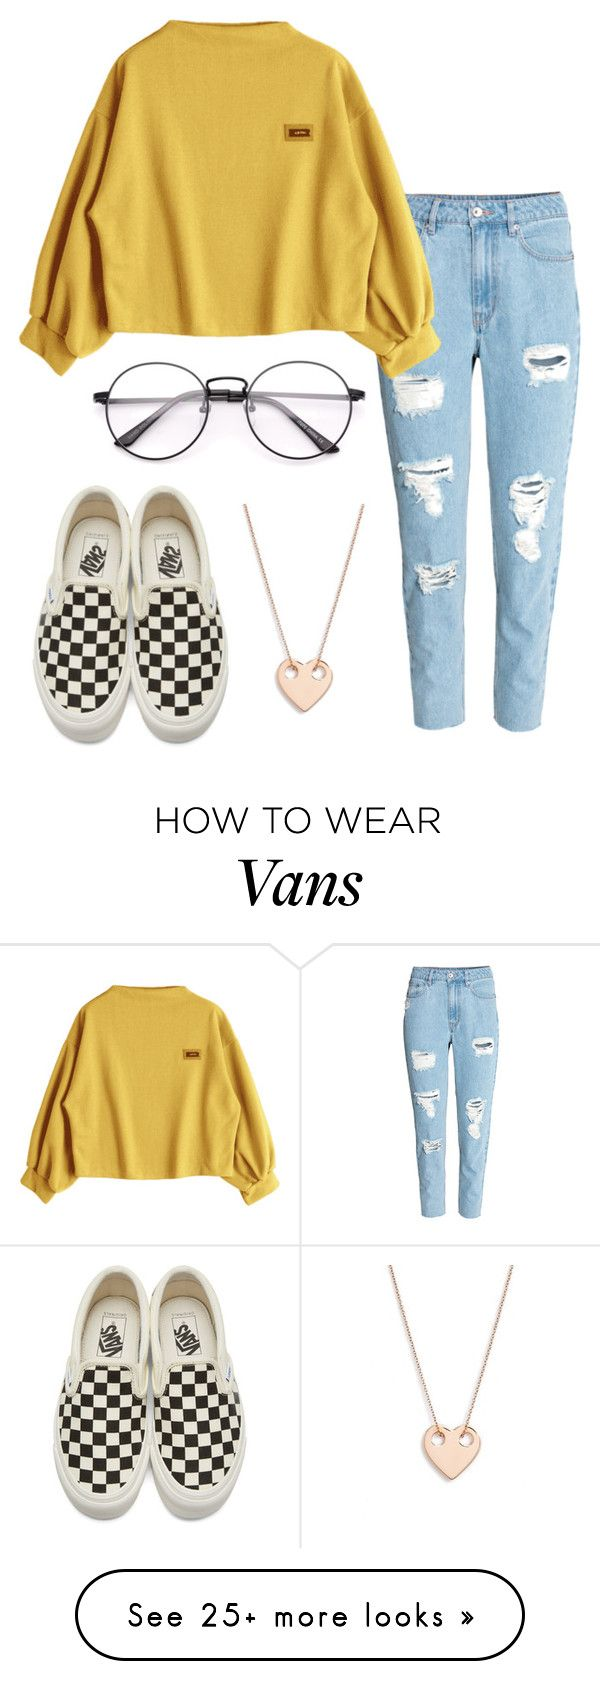 """""""#No name"""" by eemaj on Polyvore featuring H&M, Vans and Ginette NY"""